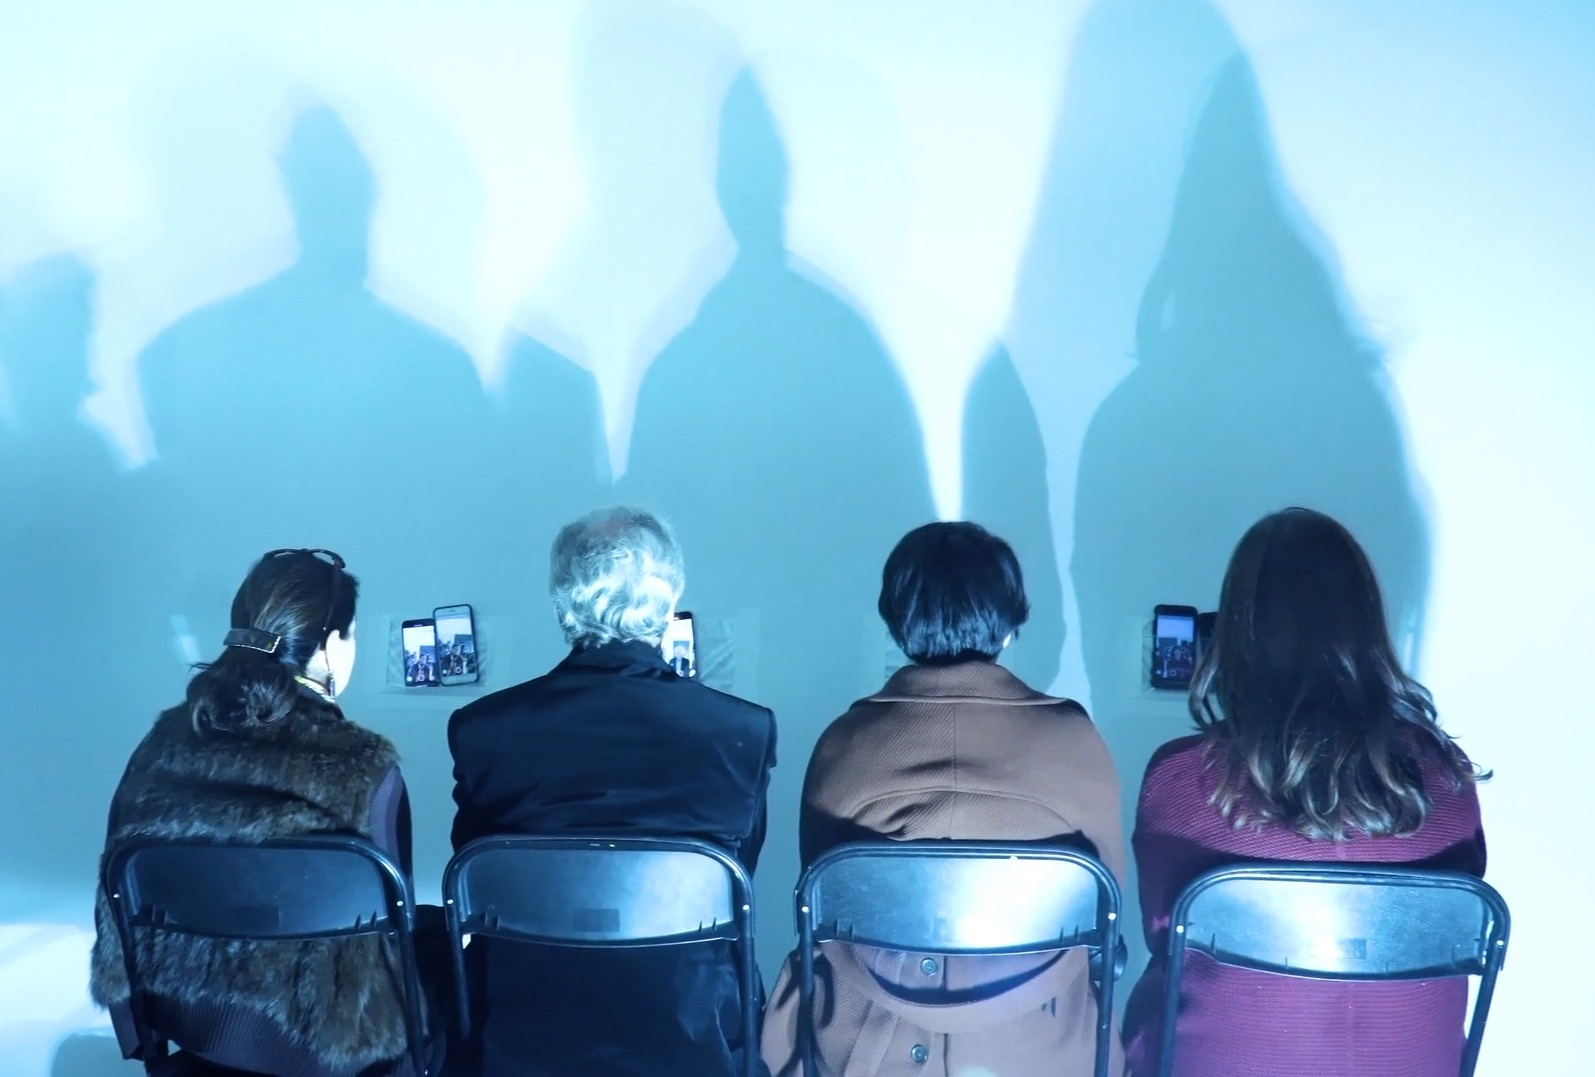 Four audience members stay seated facing the wall looking at their image on their phones mounted on the wall in a clear sleeve. The lighting produces four shadows along the wall.